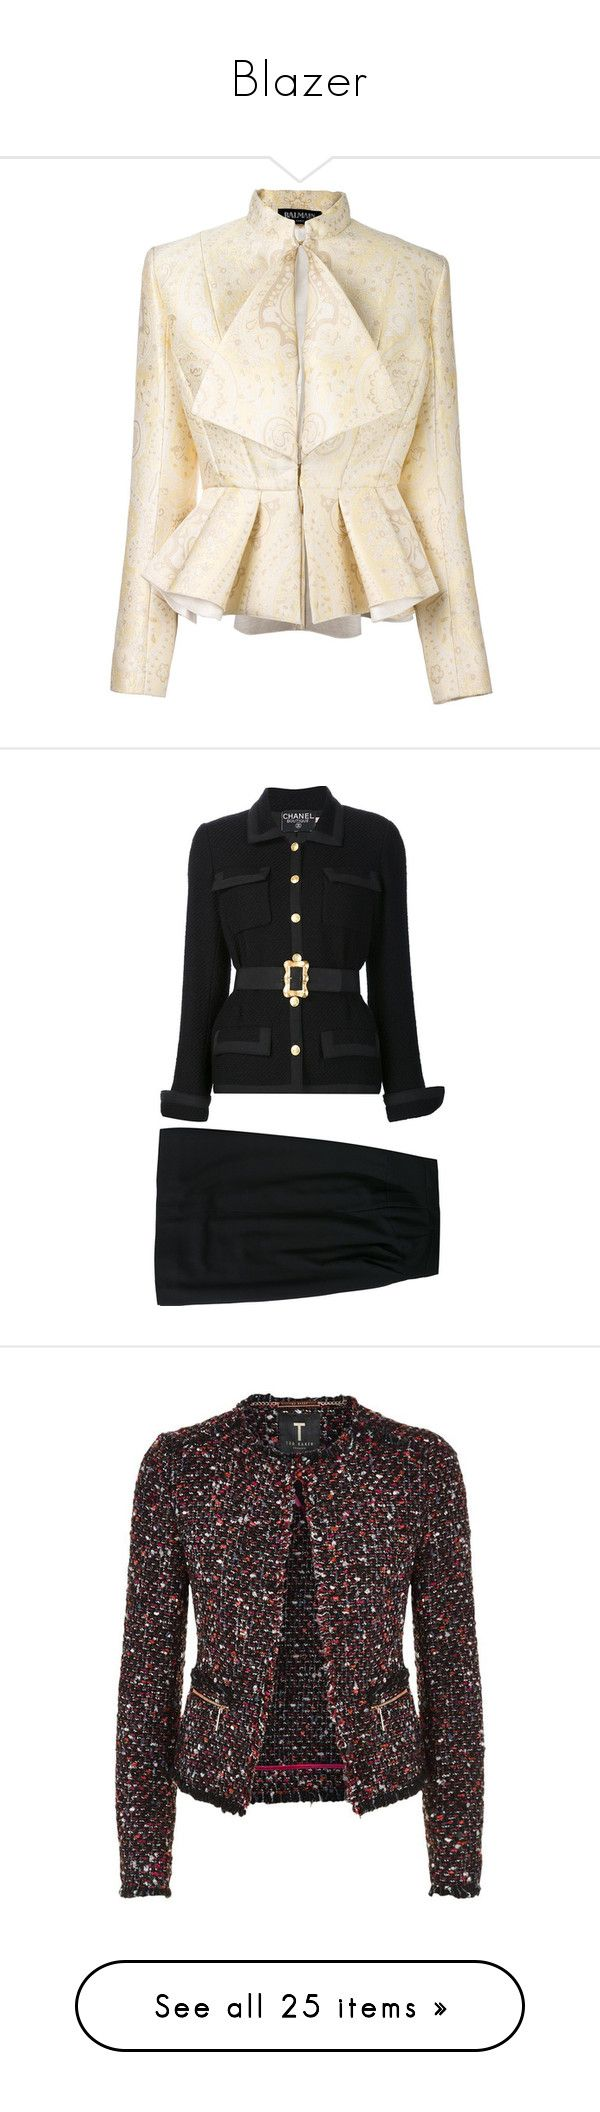 """""""Blazer"""" by tdctje on Polyvore featuring outerwear, jackets, yellow, yellow jacket, cinch jackets, pink jacket, paisley jackets, long sleeve jacket, suits en black"""